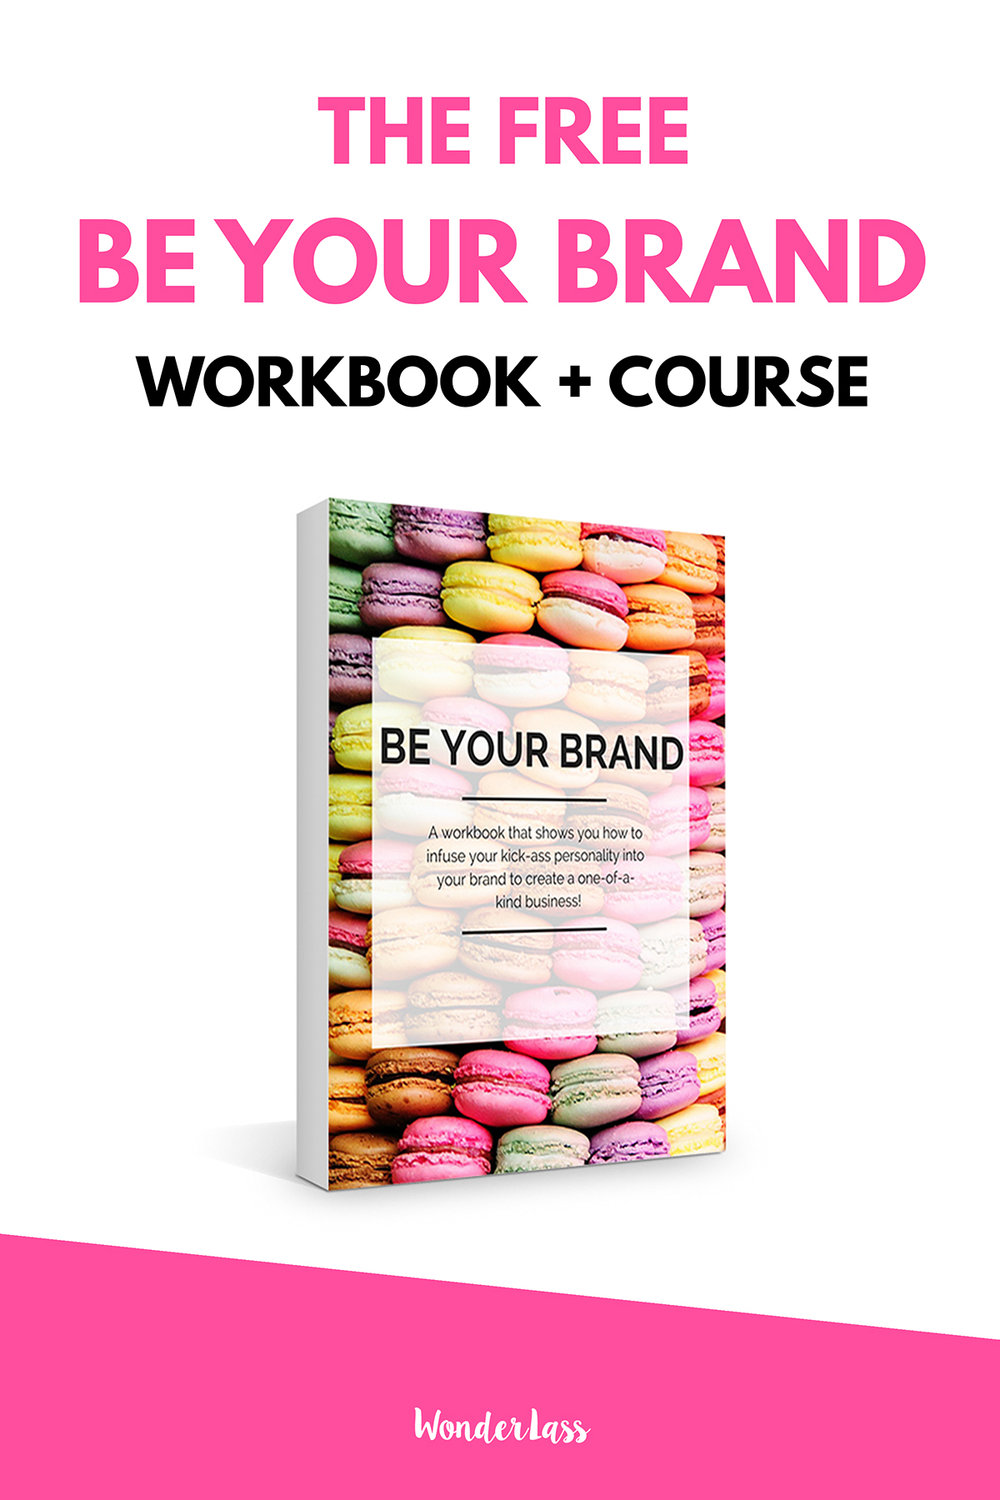 Be Your Brand: A FREE Workbook! | Learn how to create an amazing, personality-filled brand with this free workbook. | Wonderlass